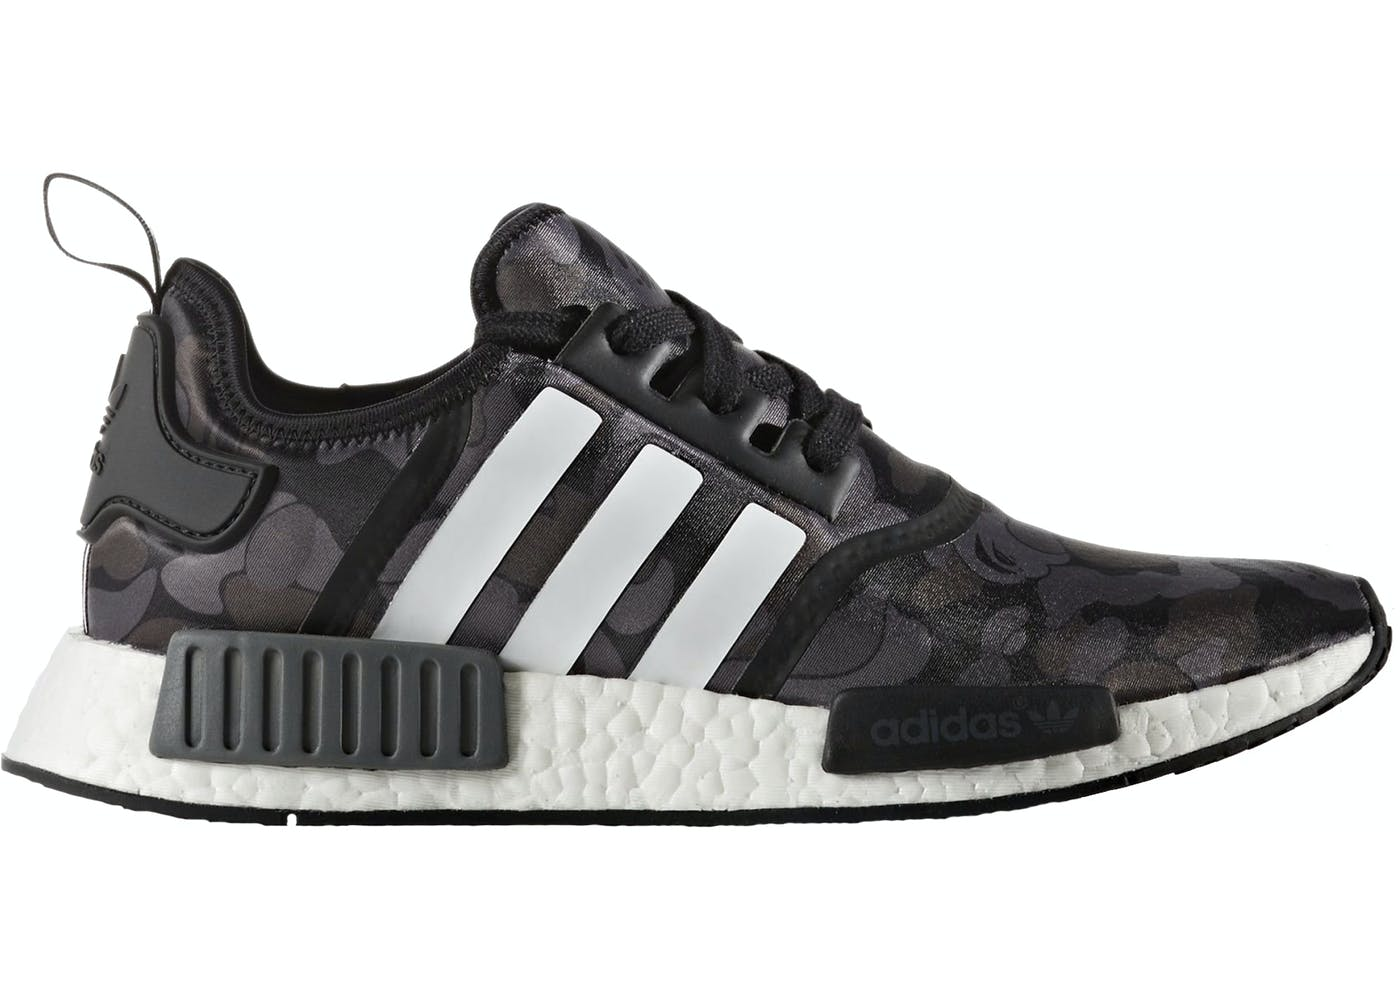 on sale 33824 a4fb7 Cheap NMD R1 Shoes for Sale, Buy Cheap Adidas NMD R1 Boost Online